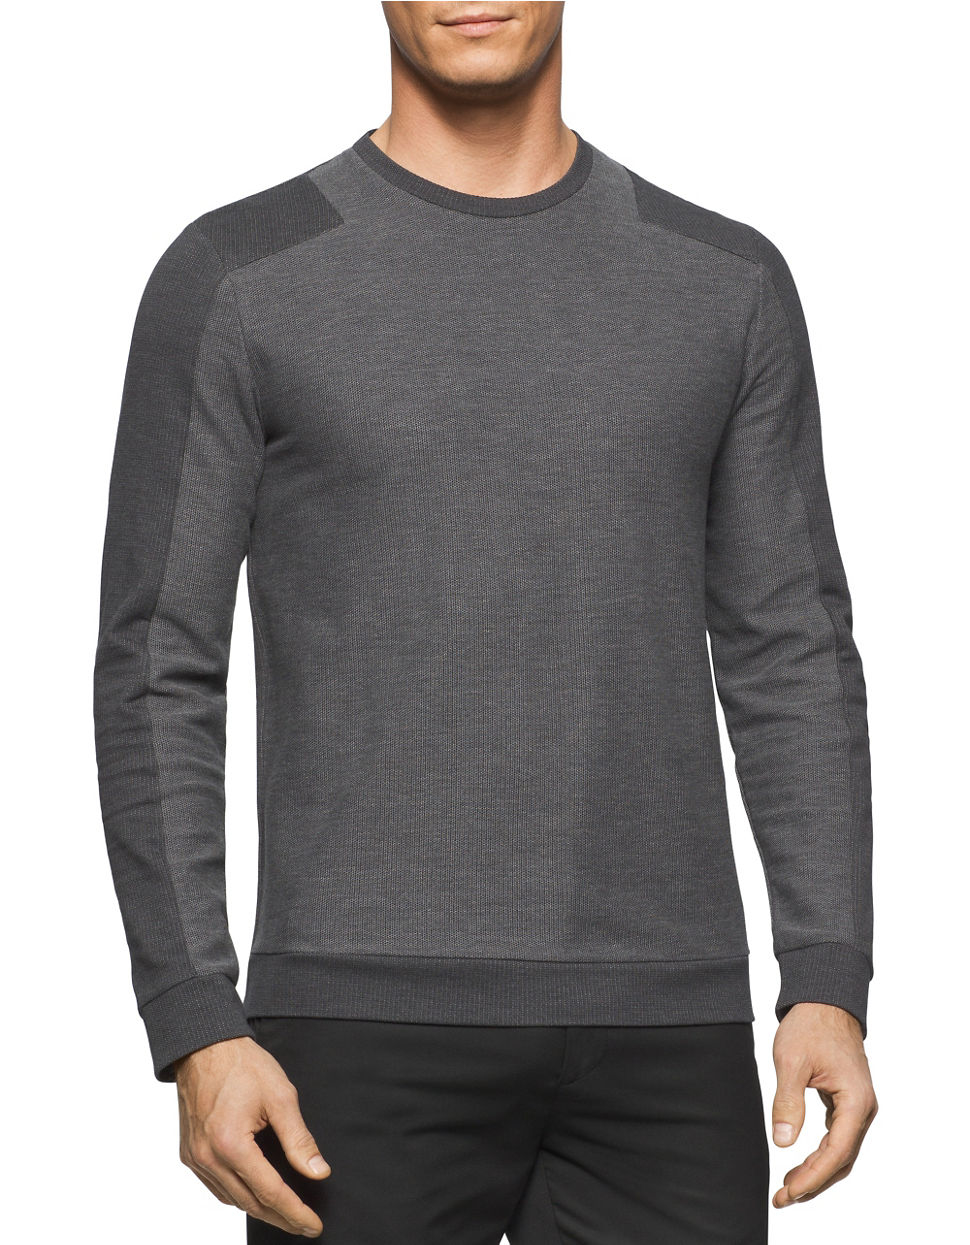 calvin klein colorblocked pullover in gray for men lyst. Black Bedroom Furniture Sets. Home Design Ideas